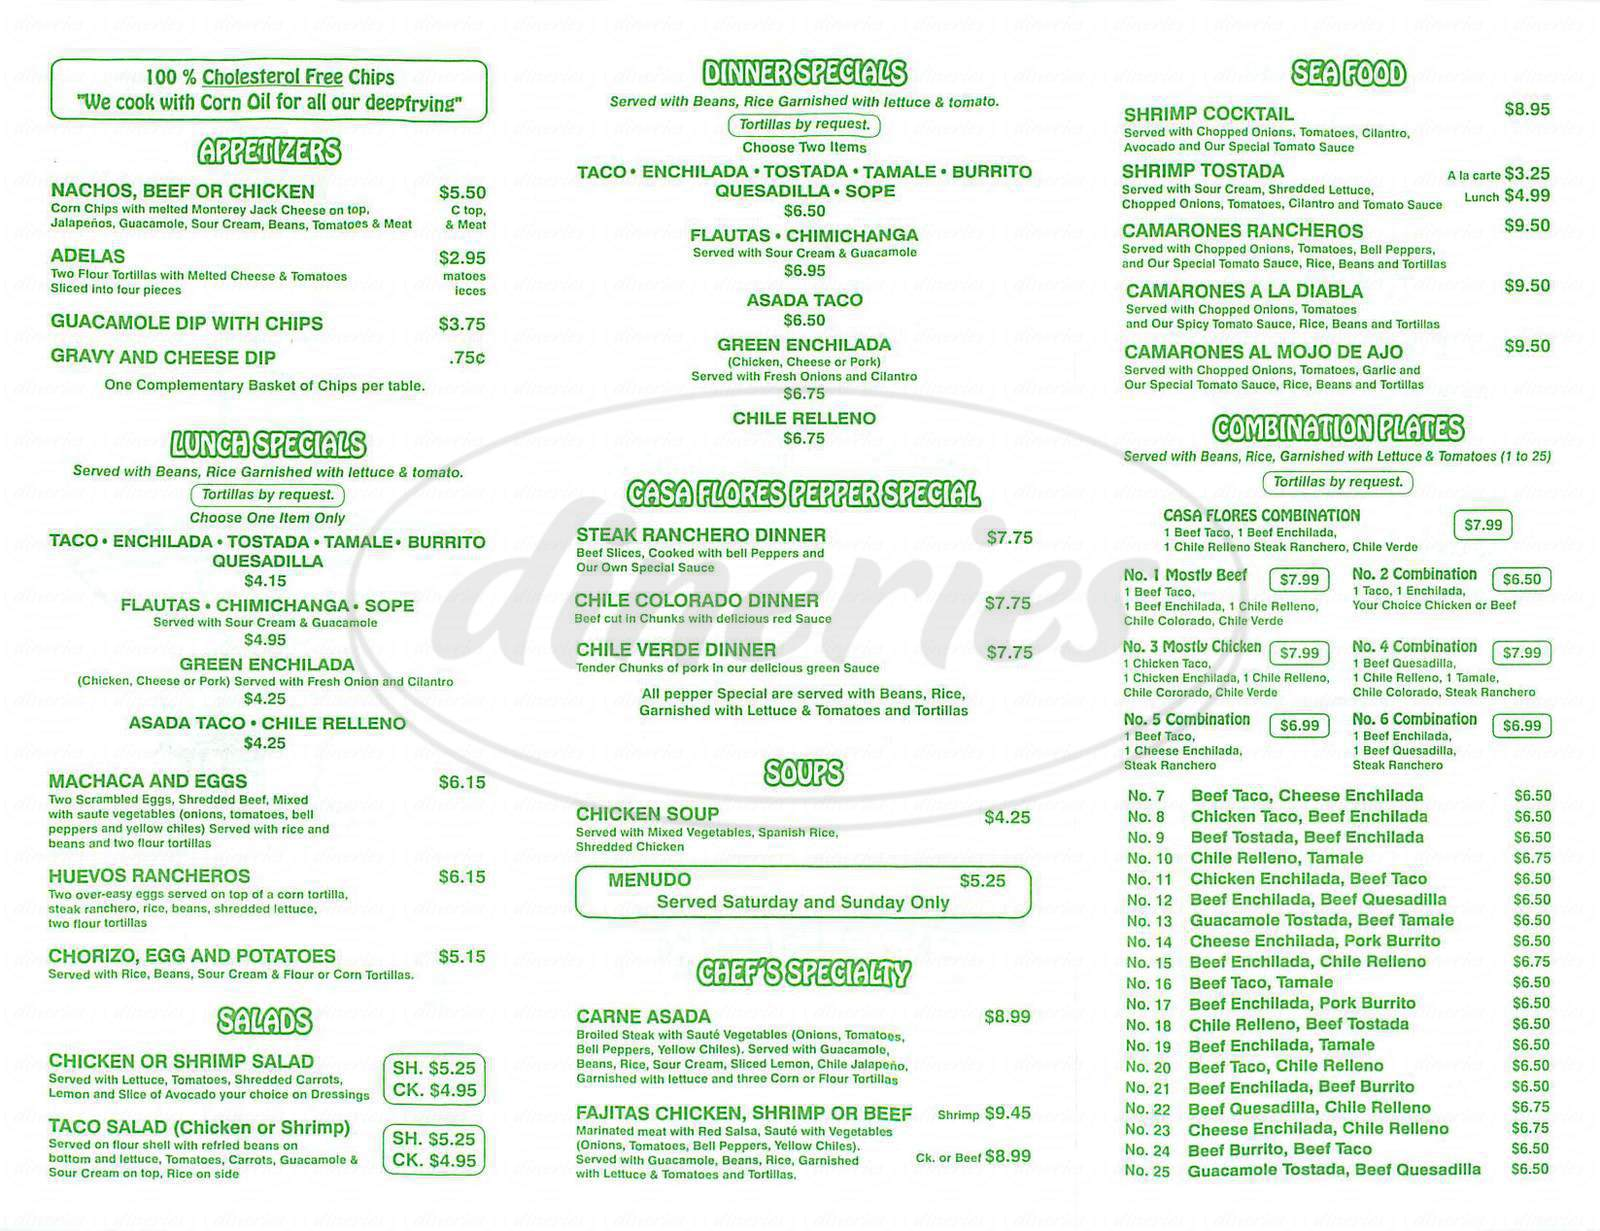 menu for Casa Flores Restaurant